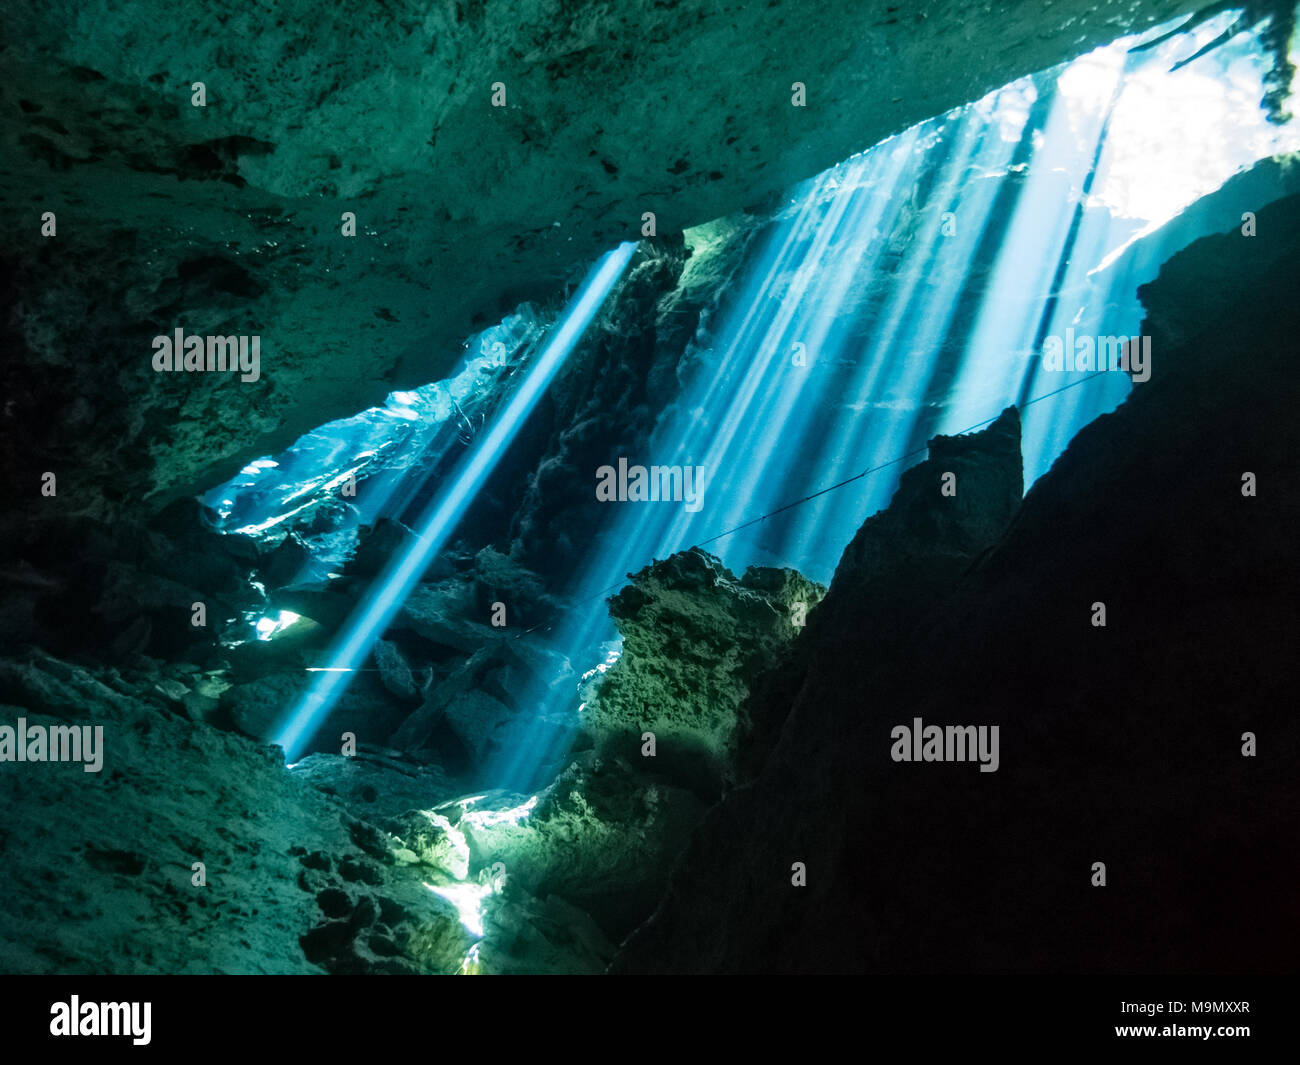 Sun rays arrive from the forest and penetrate the crystal clear waters inside the Chac Mool Cenote near Playa del Carmen in Mexico - Stock Image